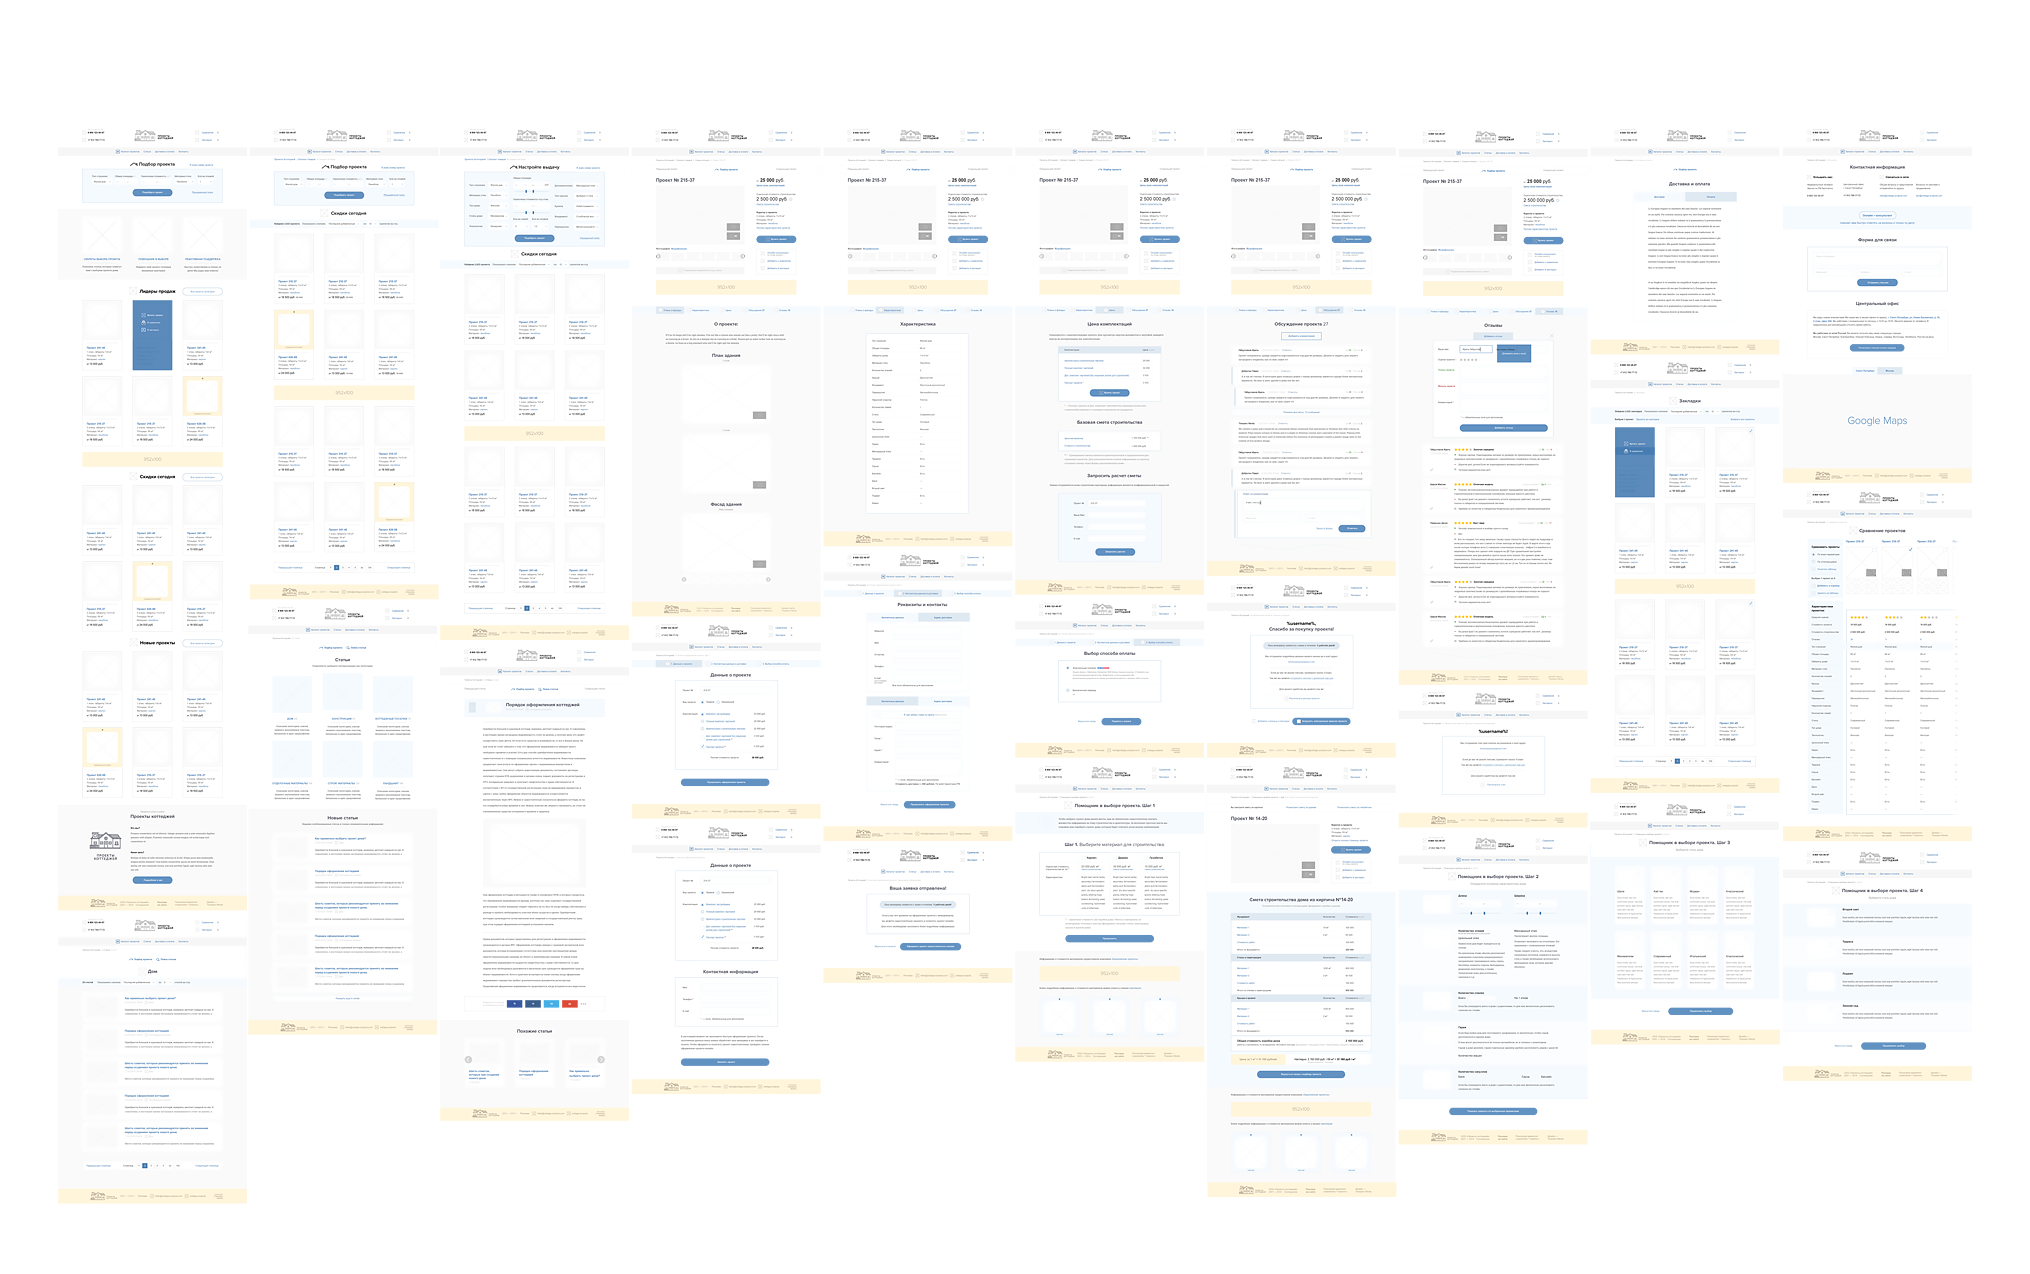 All wireframes of the PoC project by Ttwozero Words